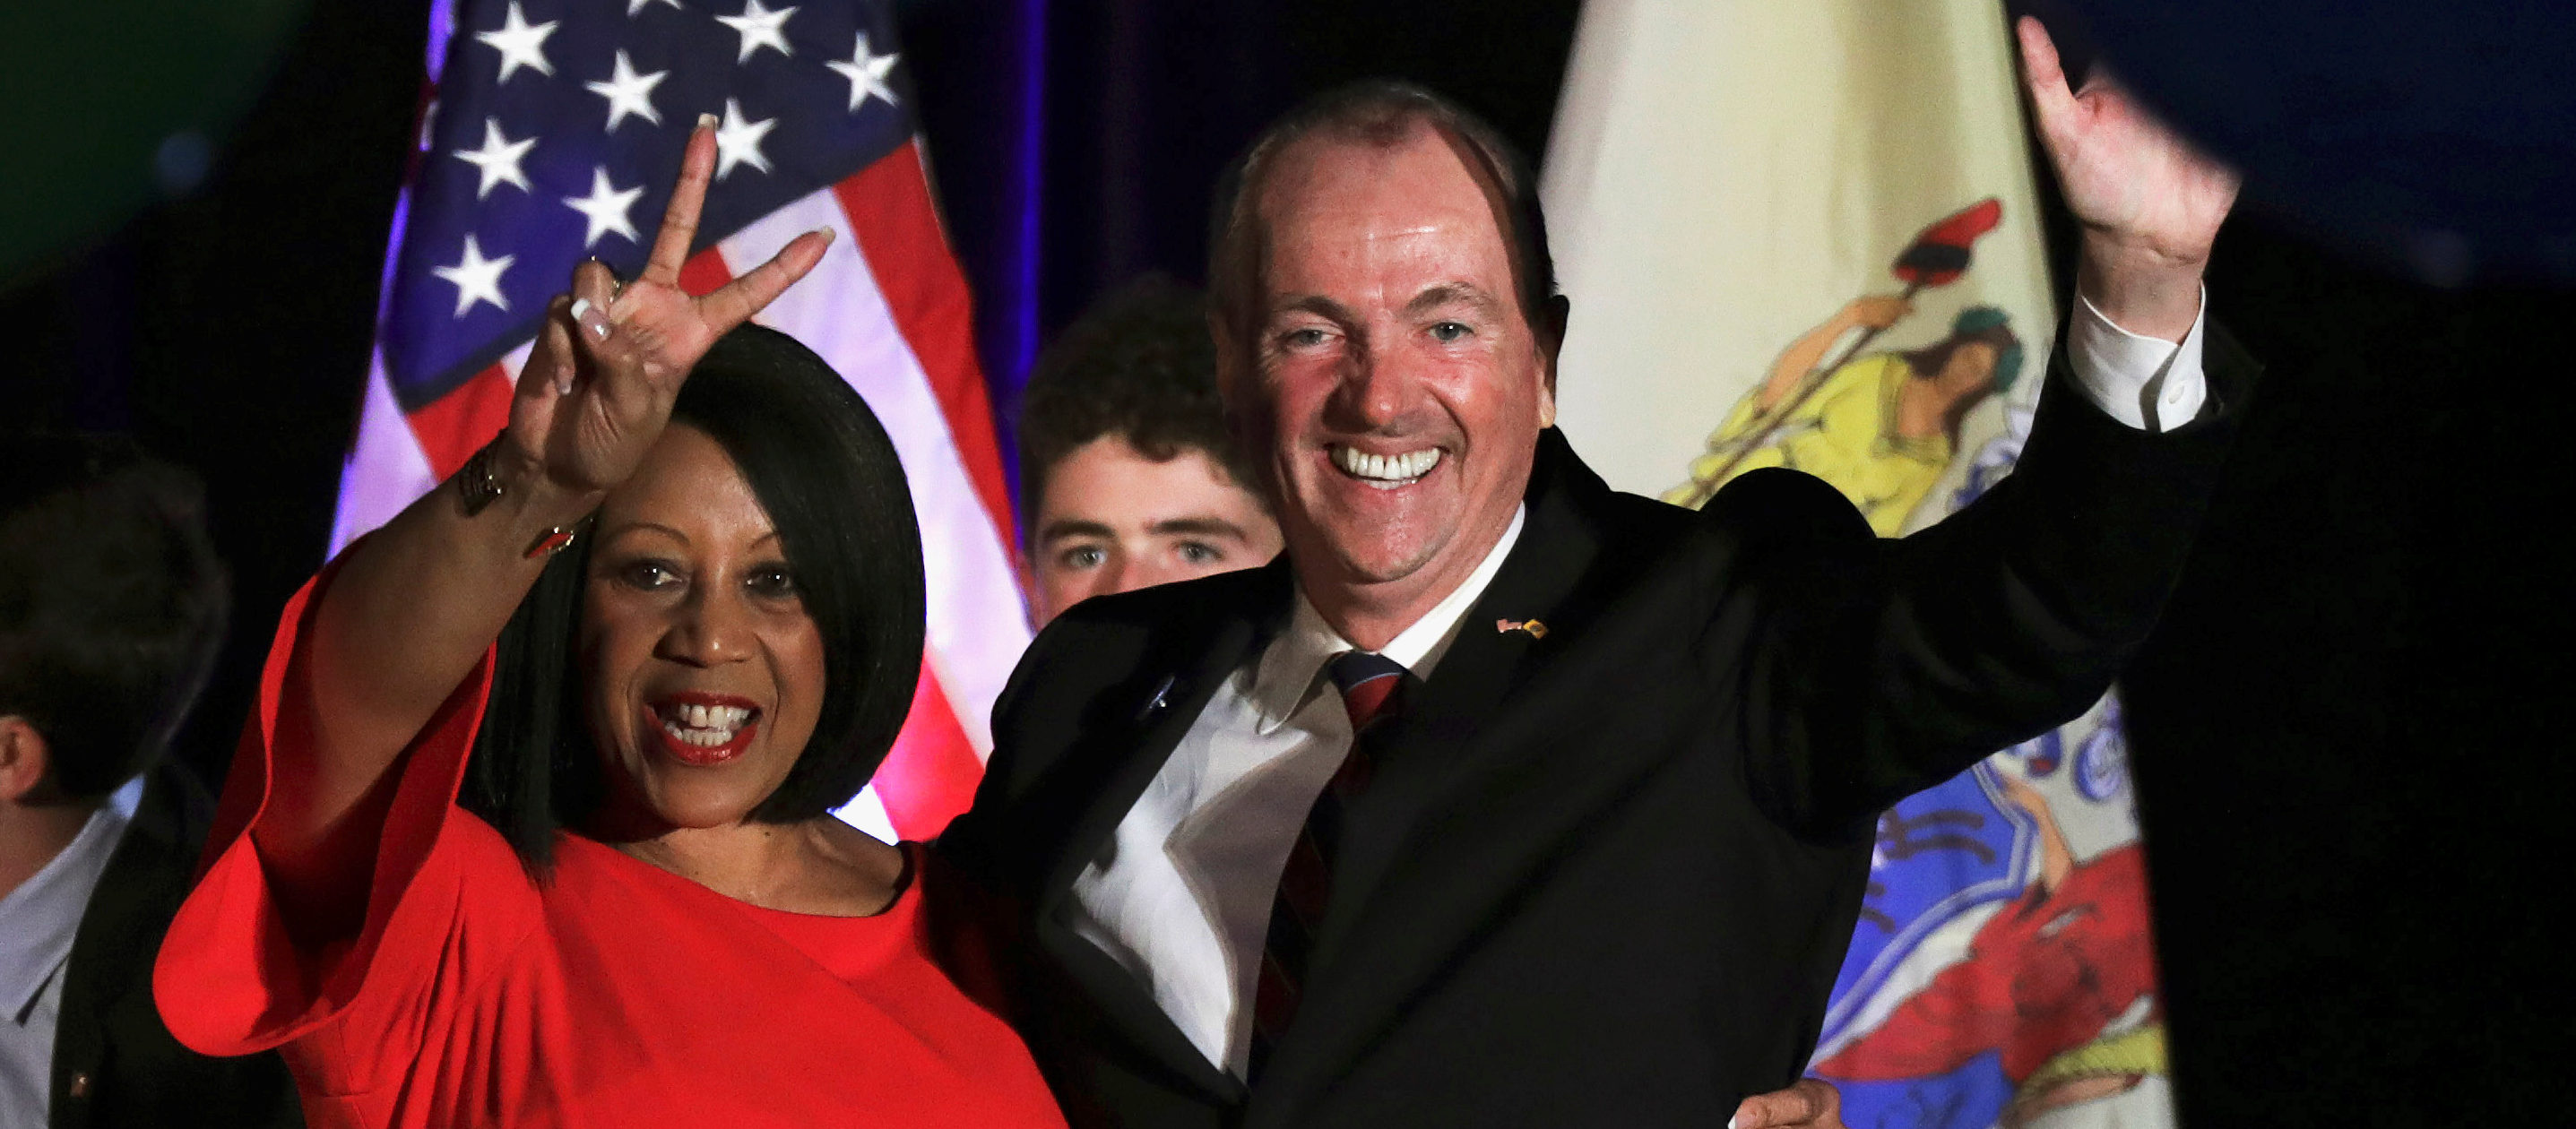 Phil Murphy, Governor-elect of New Jersey, and Shiela Oliver, Lieutenant Governor-elect, wave to supporters at their election night victory rally in Asbury Park, New Jersey, U.S., November 7, 2017. REUTERS/Dominick Reuter - RC1C736A2A80